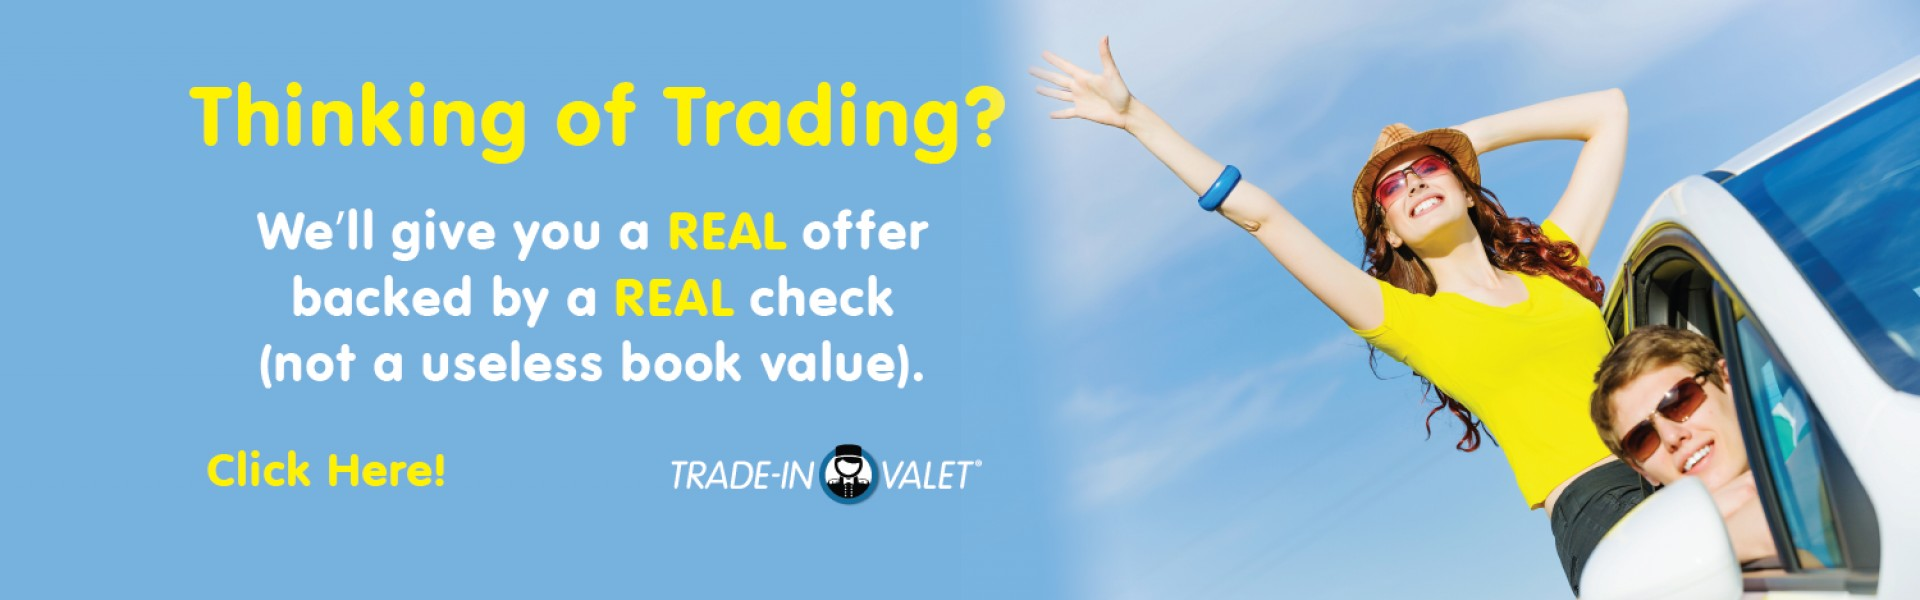 Thinking of Trading? We'll give you a REAL offer backed by a REAL check (Not a useless book value)